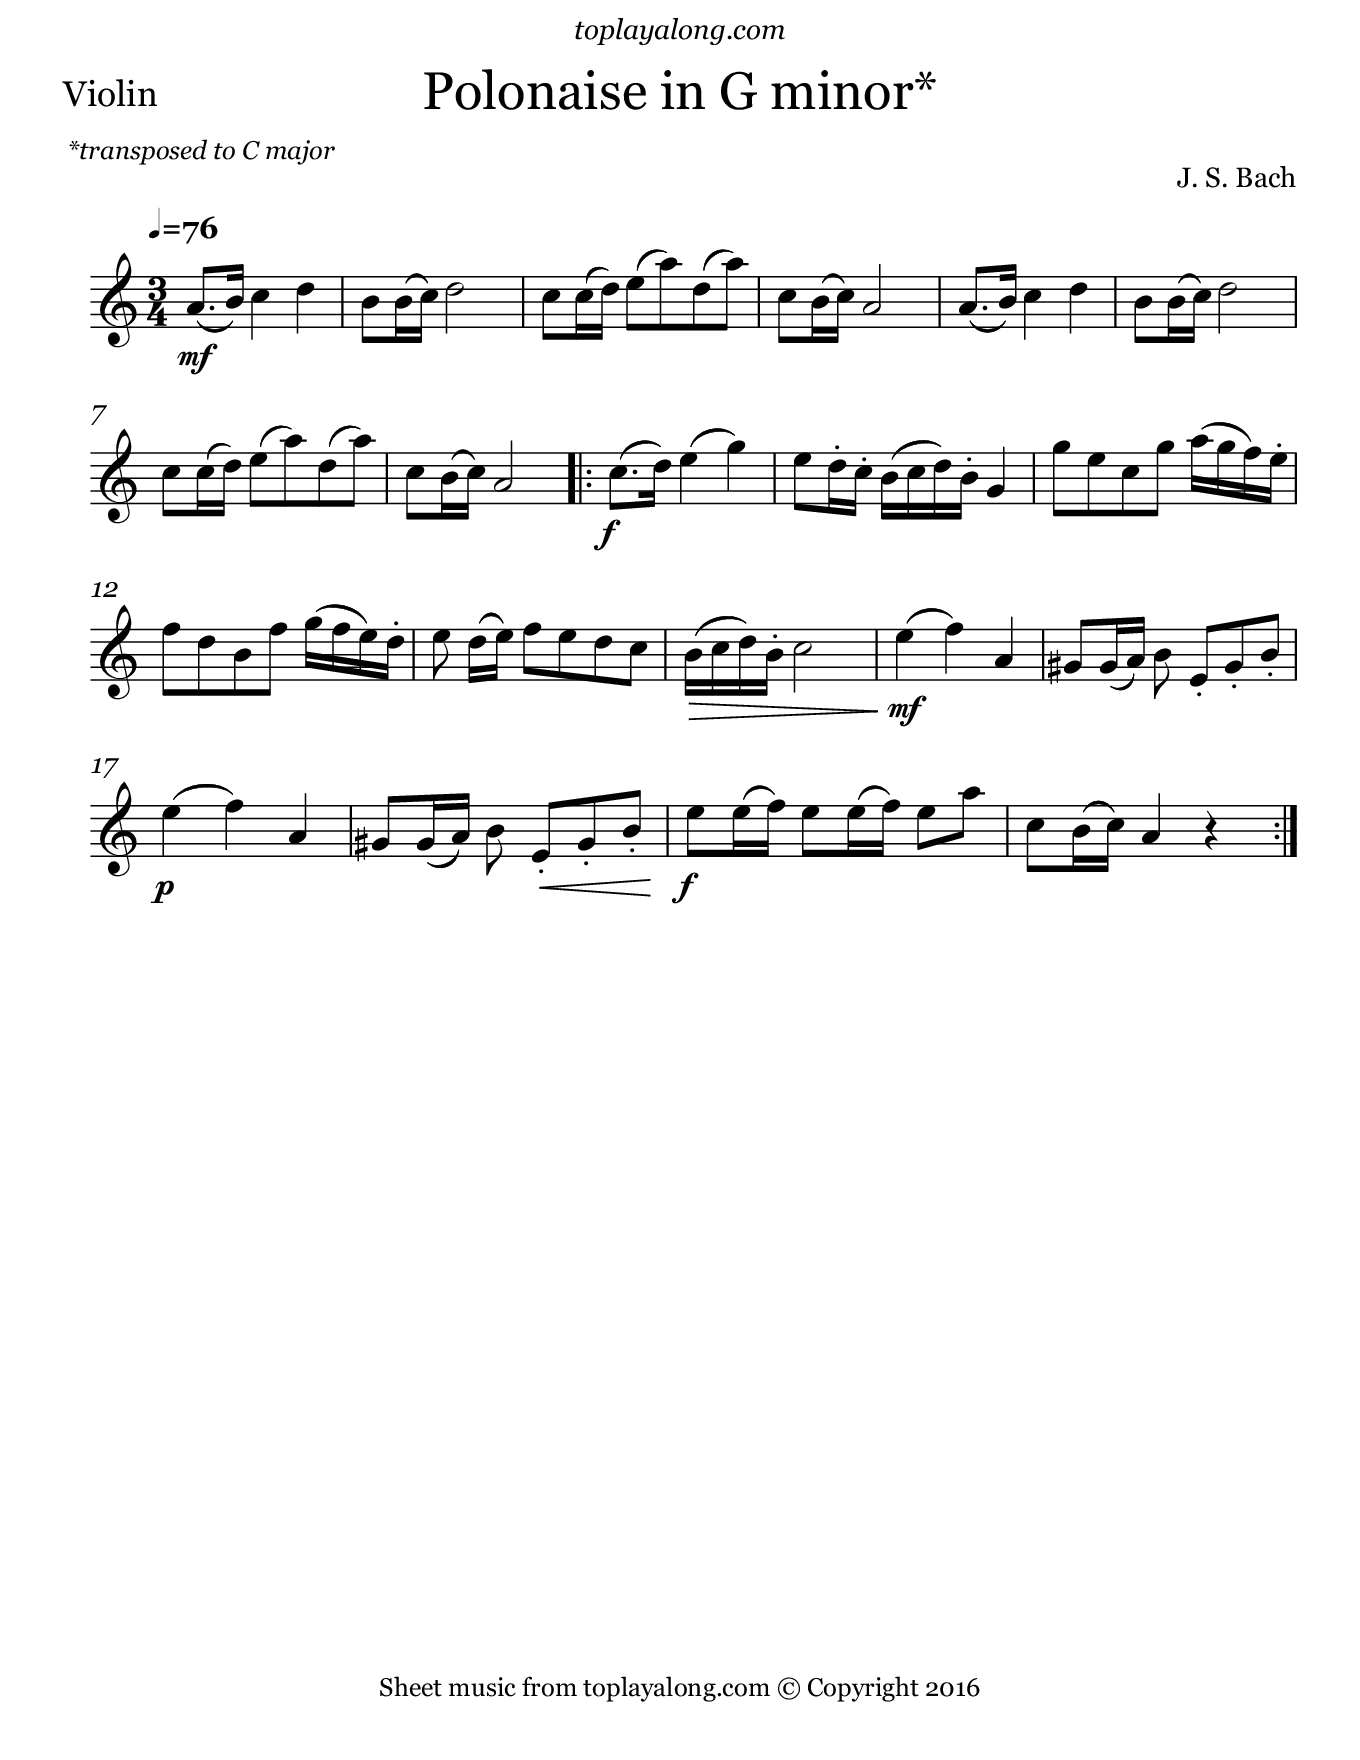 Polonaise in G minor by J. S. Bach. Sheet music for Violin, page 1.